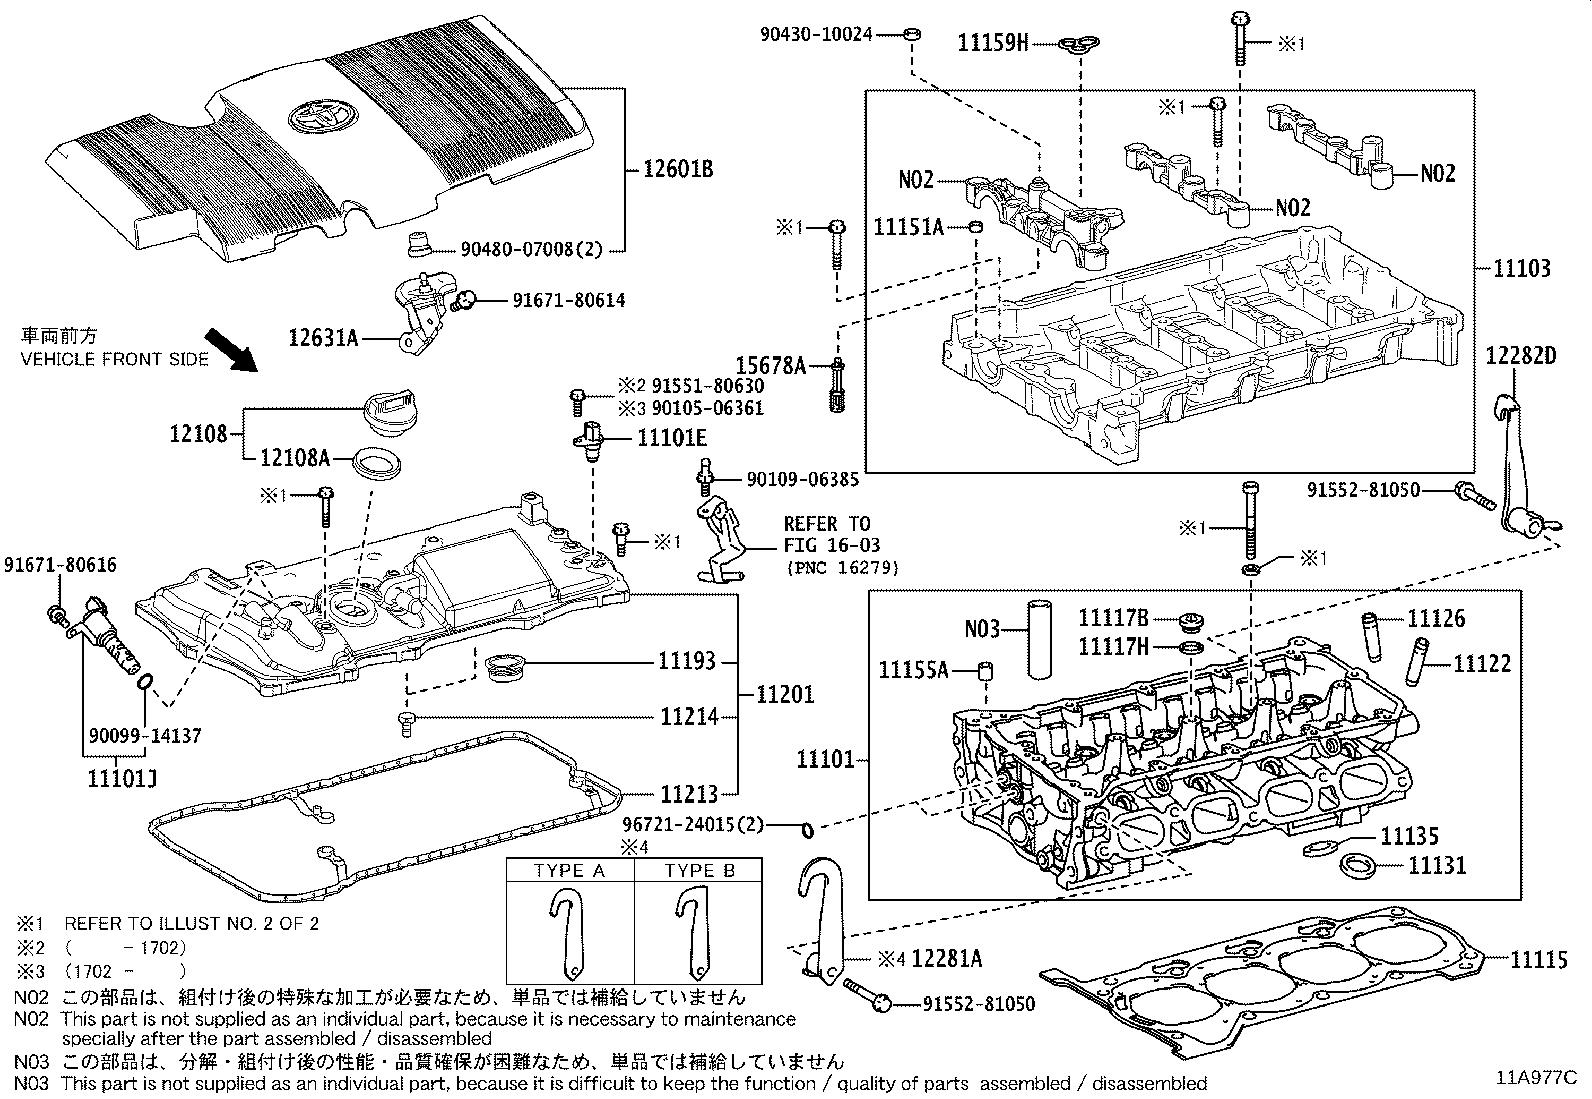 Toyota Prius Housing Sub Assembly Camshaft Engine